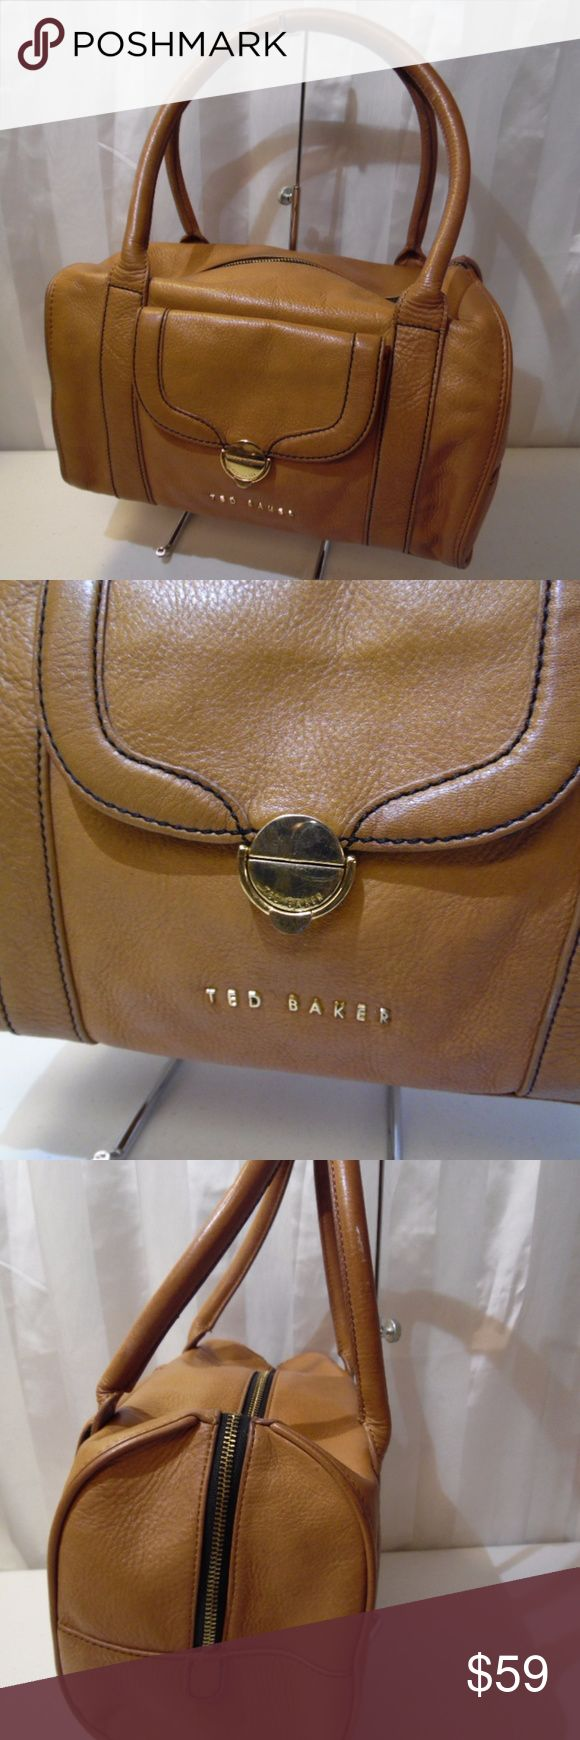 """Ted Baker London Soft tan leather hand bag satchel Size 11.5-8-5- ...8"""" drop., in excellent condition. gently worn. light scuff on handle pic 3..visible tiny white stain dots on back side pic 4...very clean and pristine. Ted Baker Bags Satchels"""